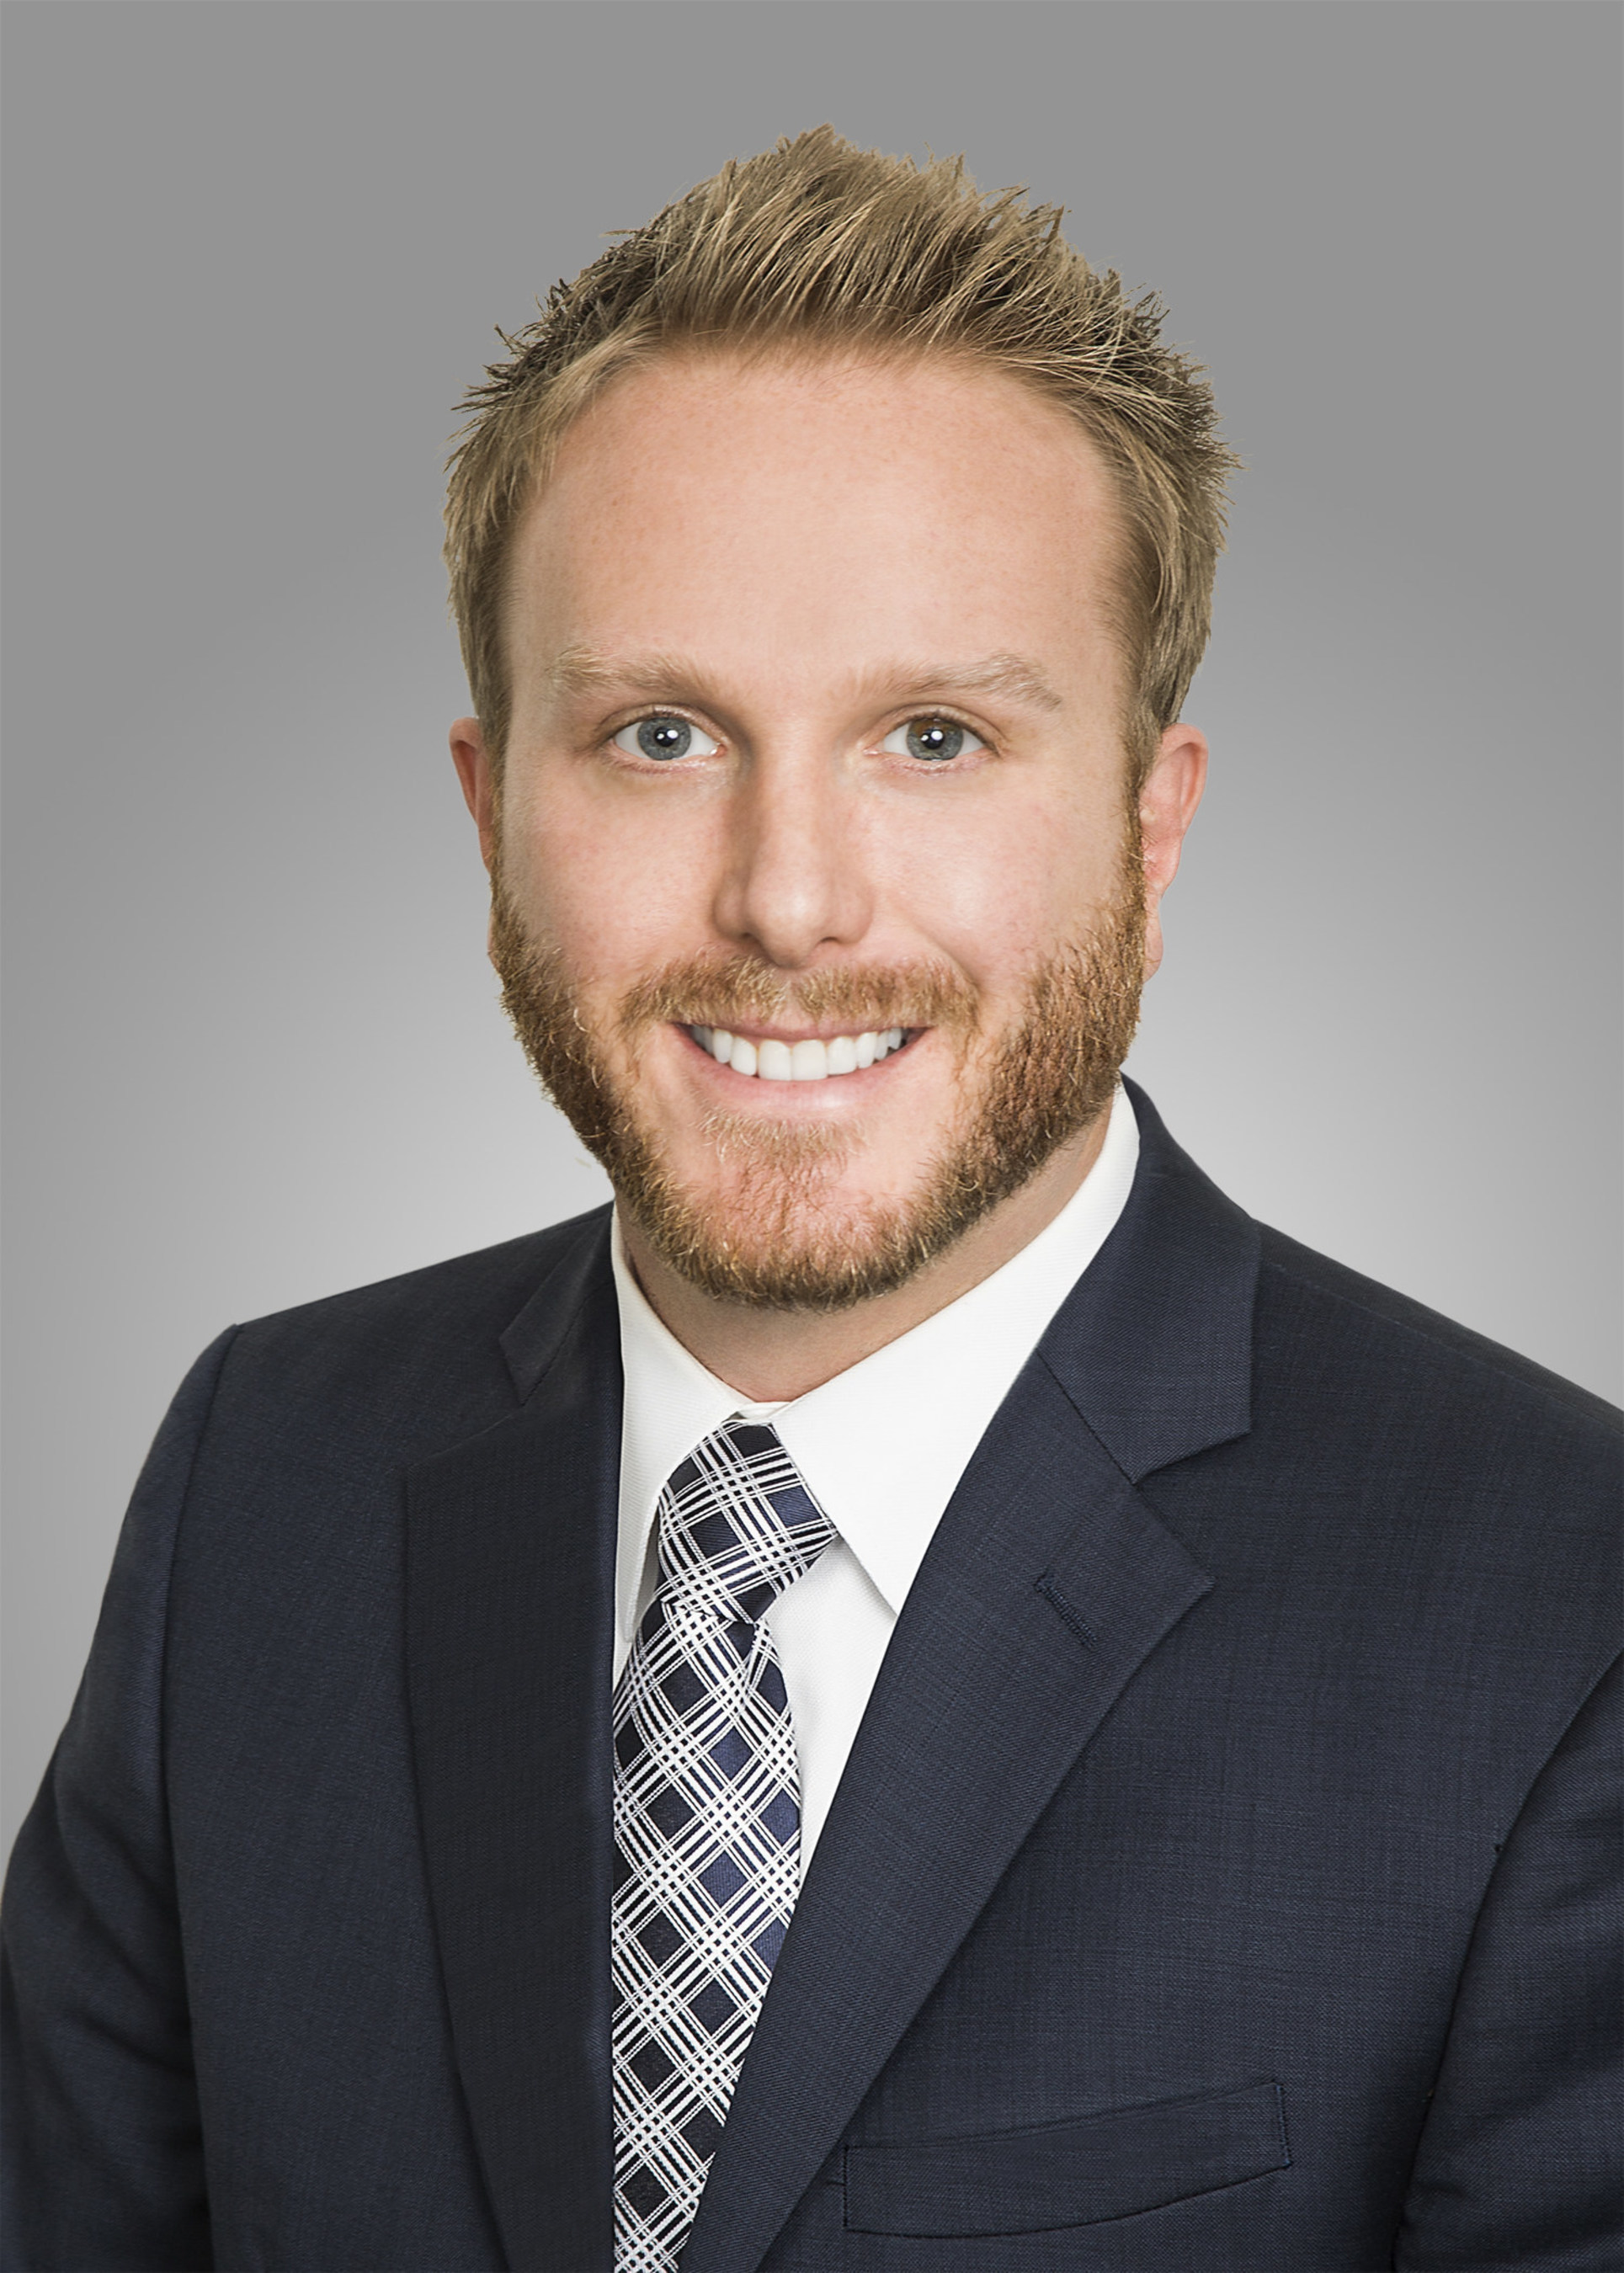 Multifamily Finance Expert Joins Leading Commercial Real Estate Finance Firm